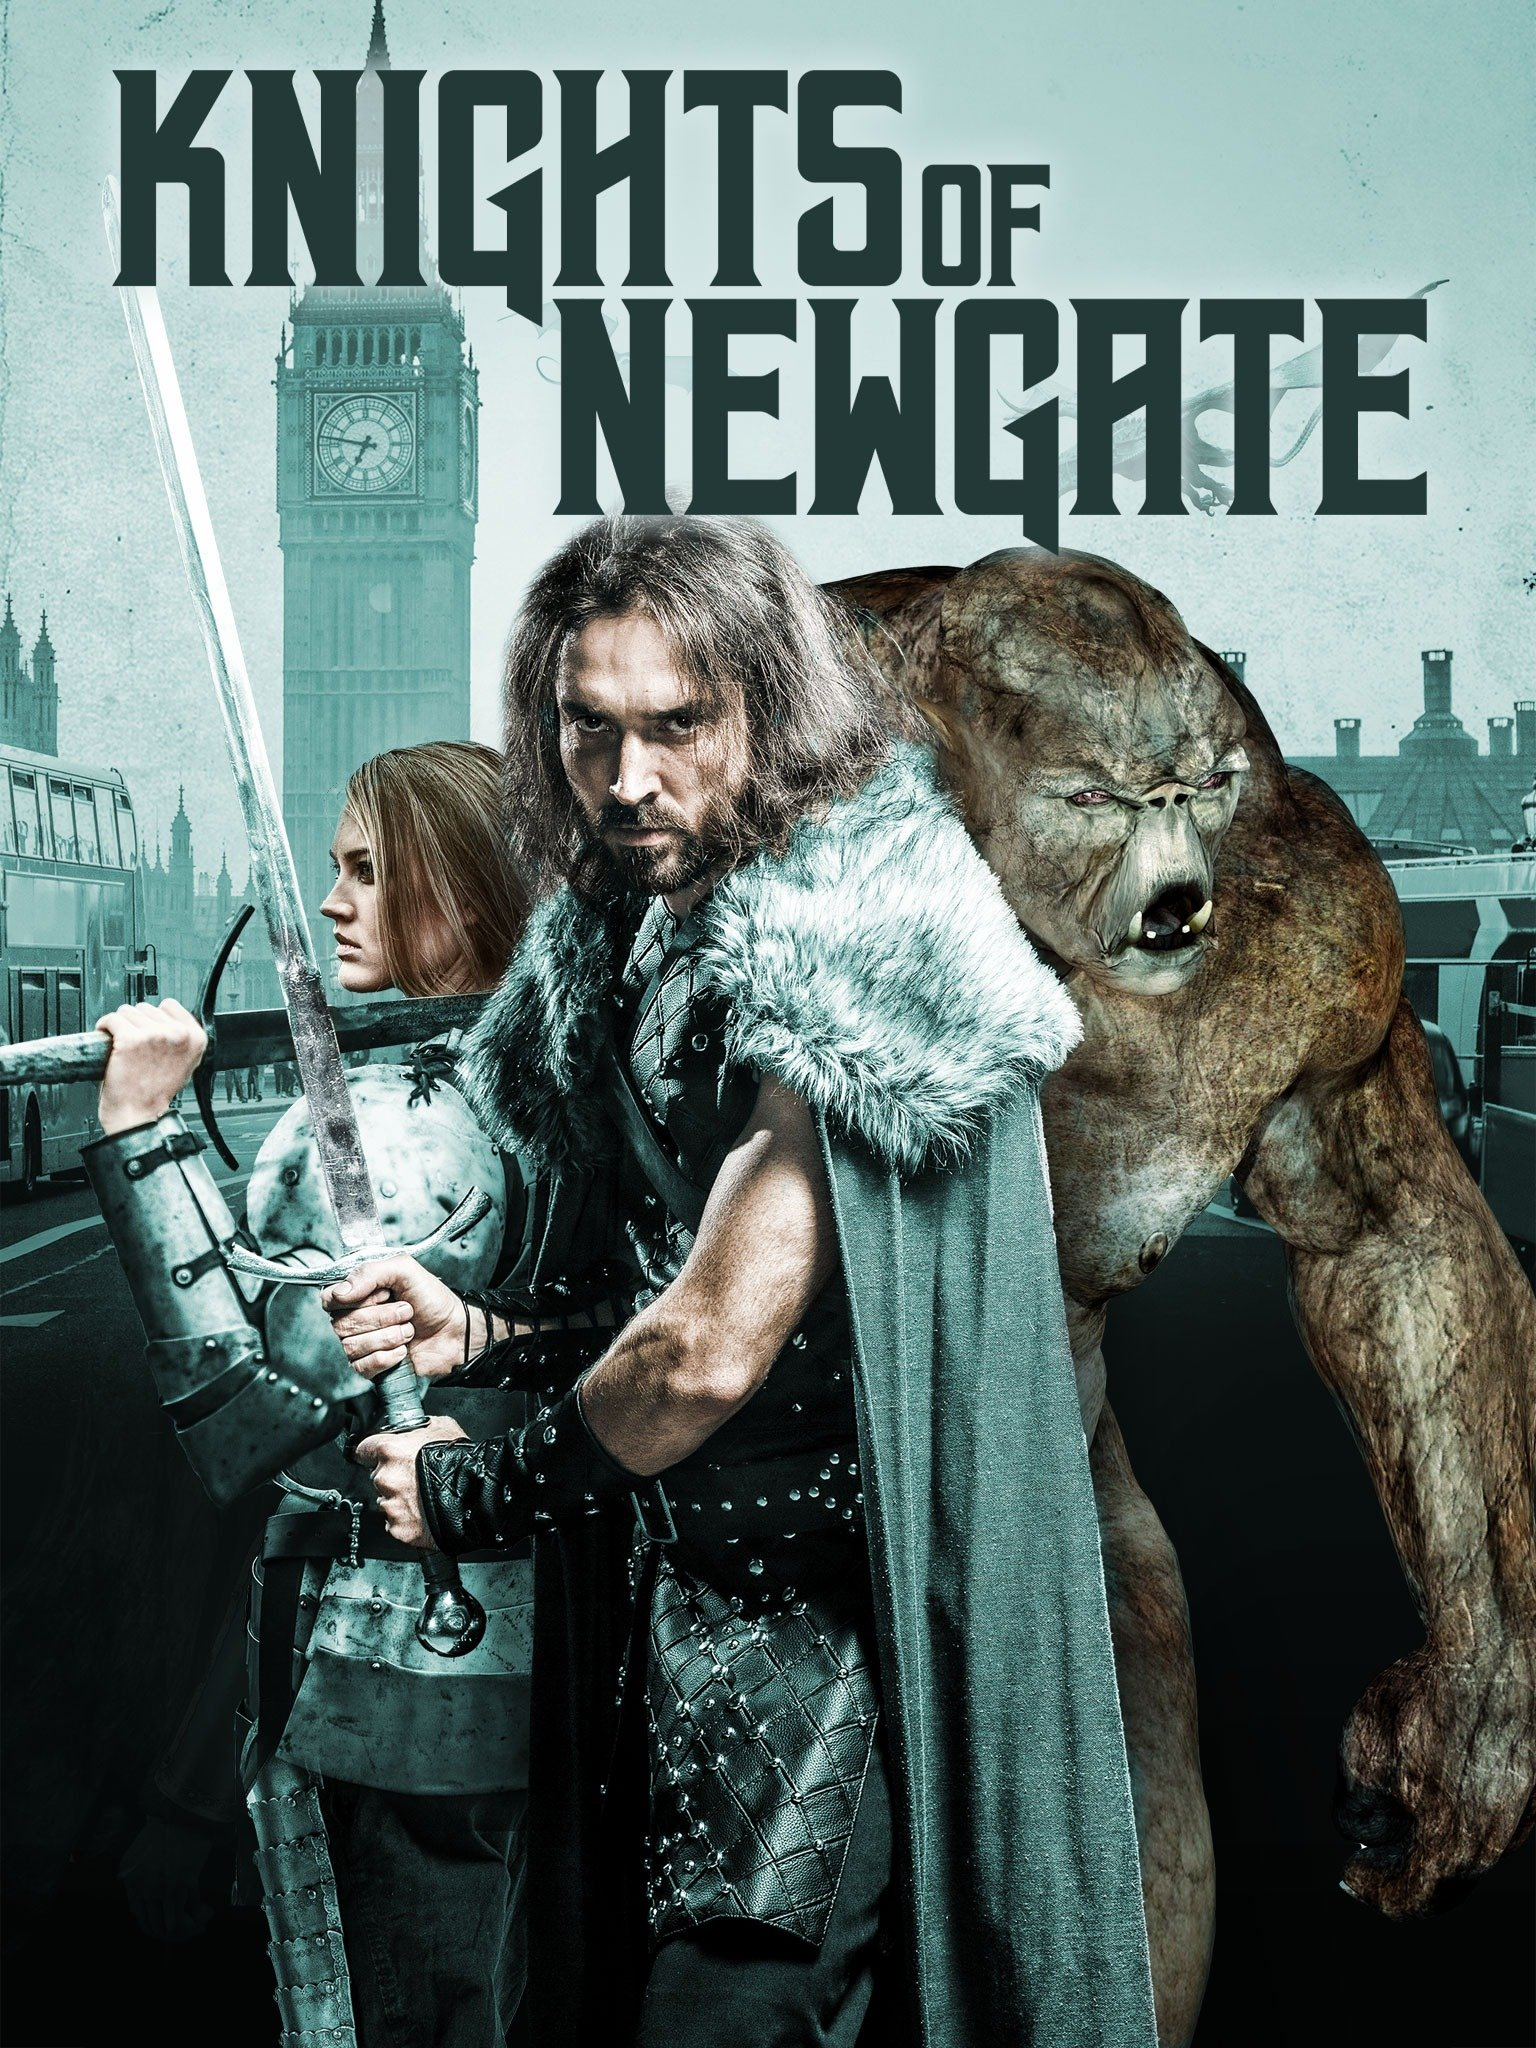 Knights of Newgate 2021 English 720p HDRip ESub 800MB Download